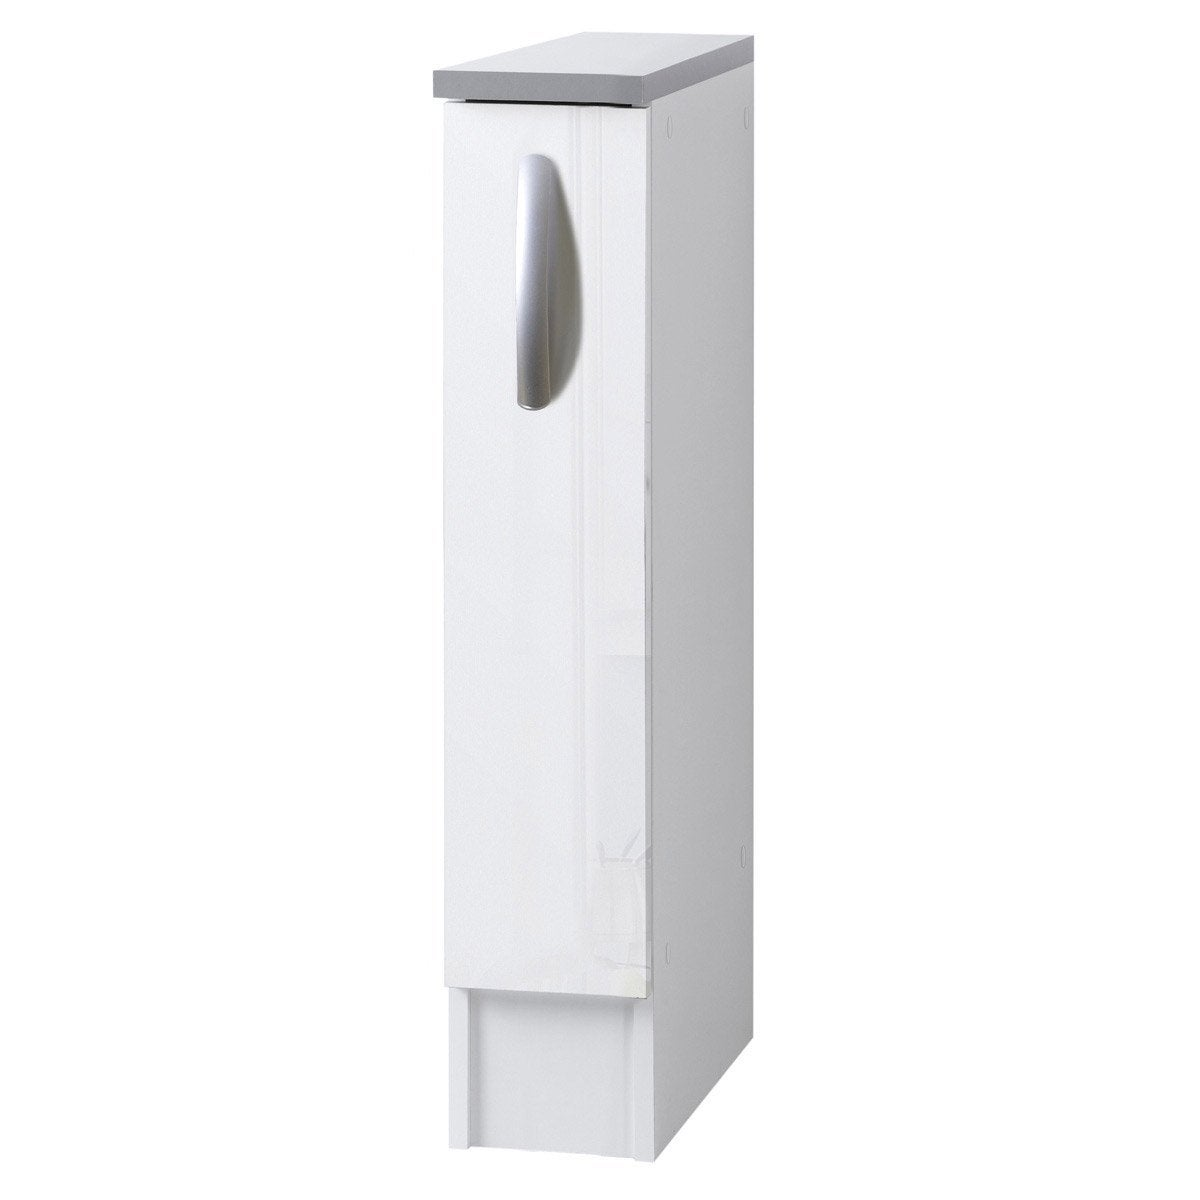 Meuble bas blanc ikea trendy faktum structure lment bas d with meuble bas blanc ikea for Meuble bas cuisine ikea